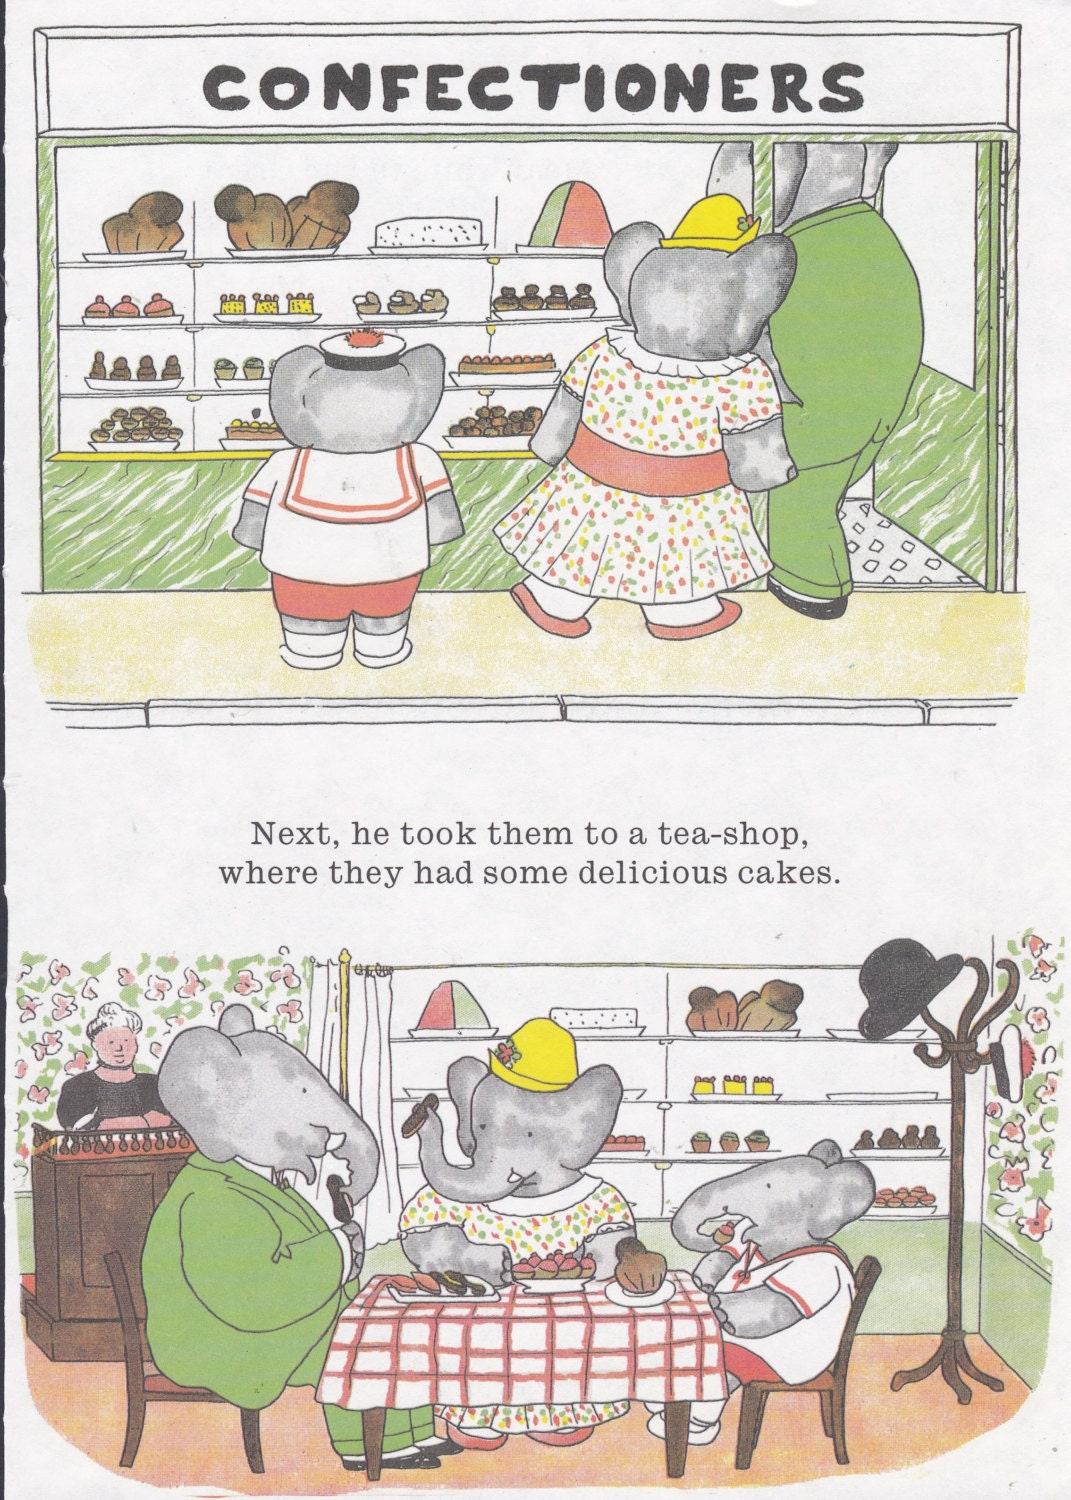 Babar the Elephant, Celleste Arthur at Cake Shop. Vintage Print Ready for Matting and Framing. Ideal for Nursery Decor. Jean de Brunhoff